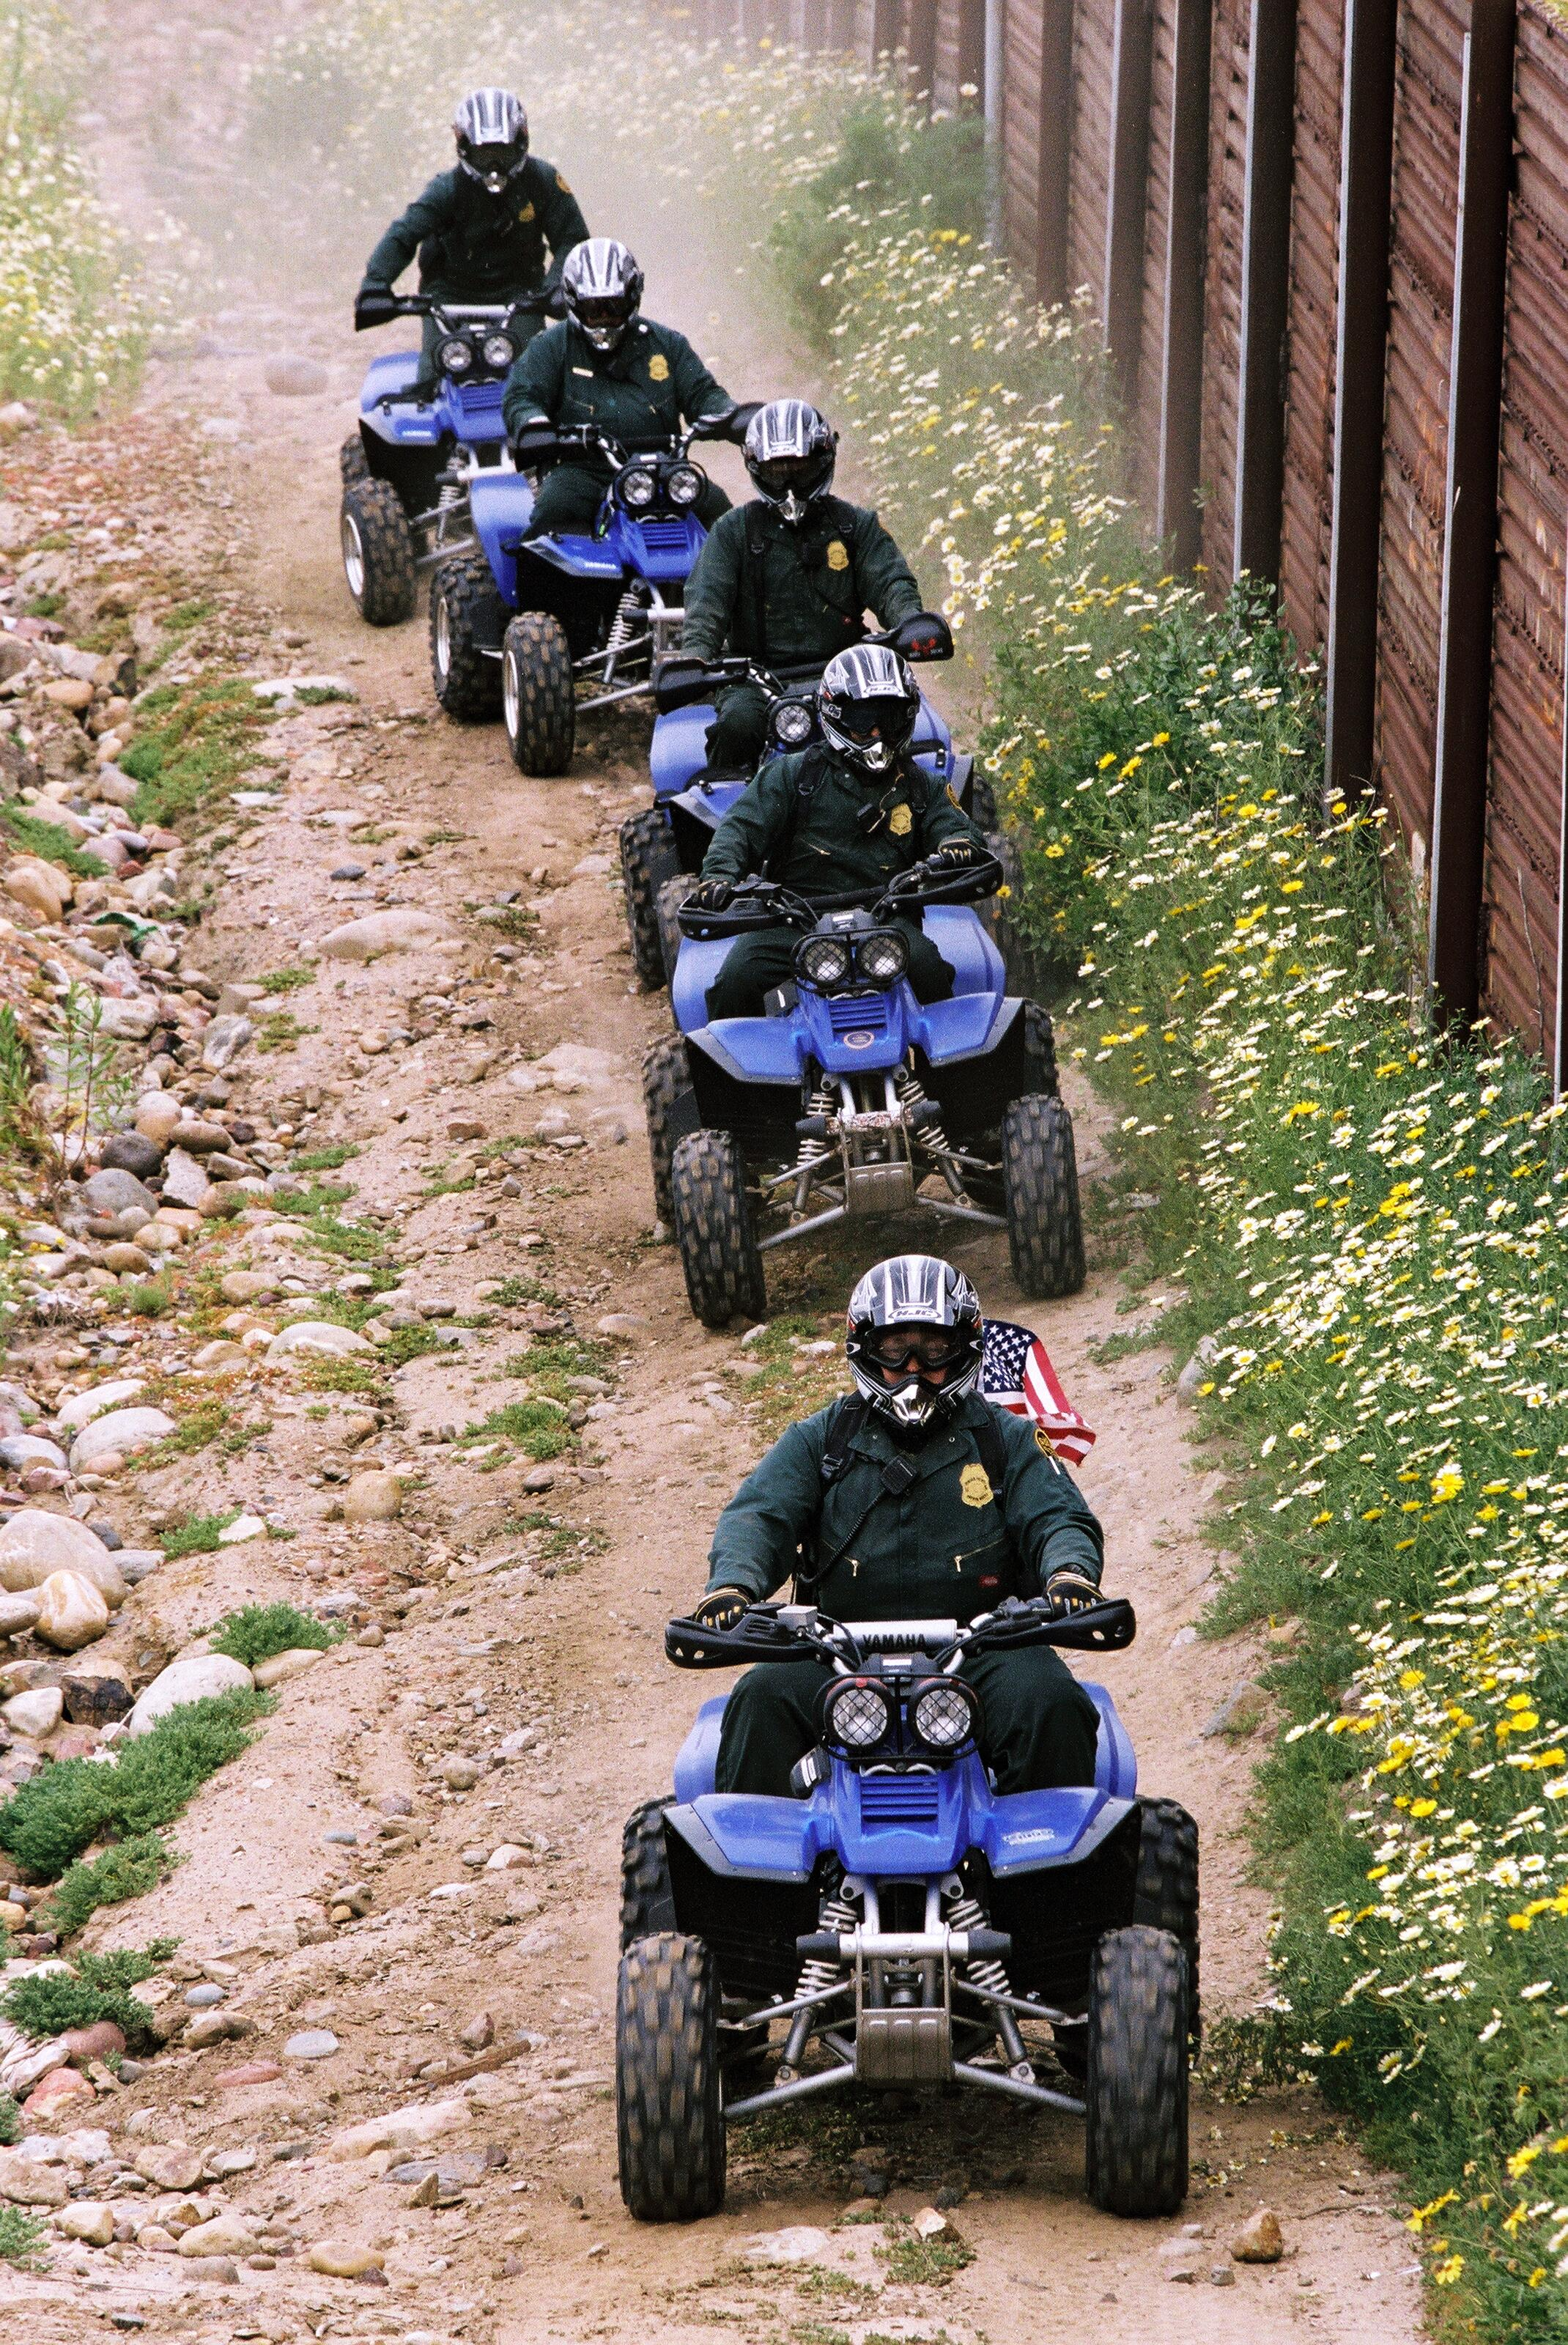 Border Patrol officers makes use of All Terrain Vehicles to patrol along the rugged border with Mexico.